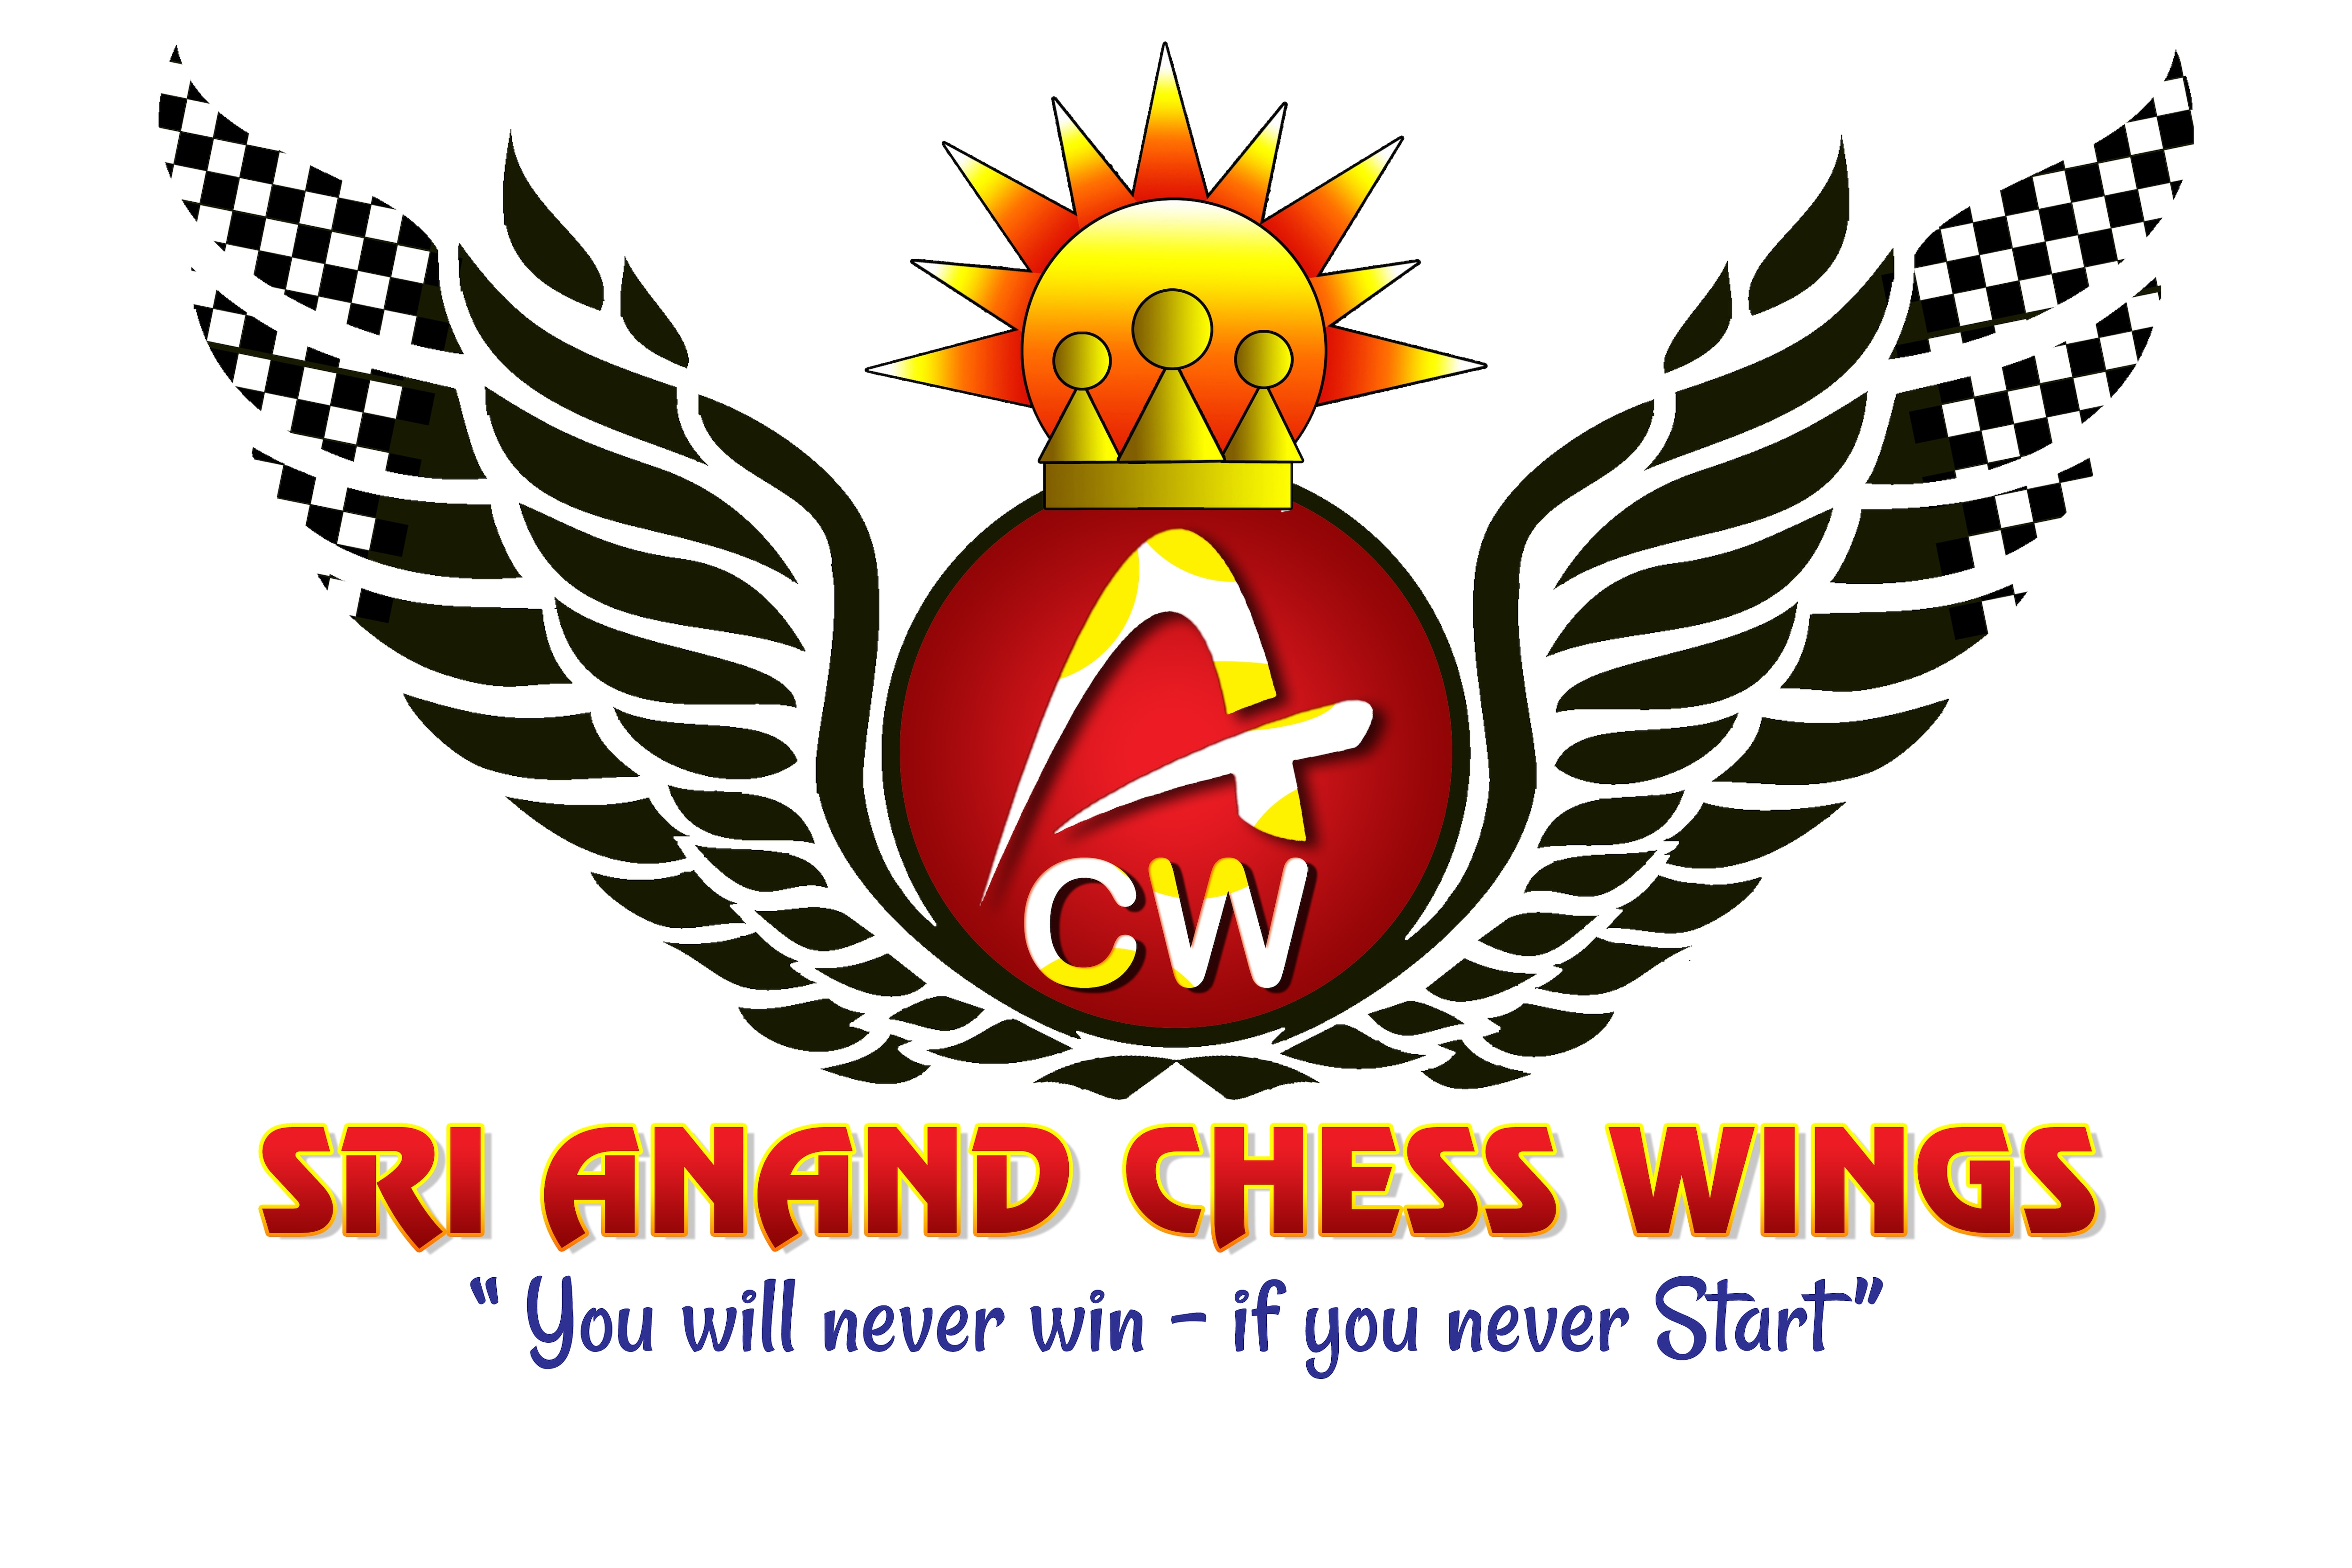 image of Sri Anand Chess Wings